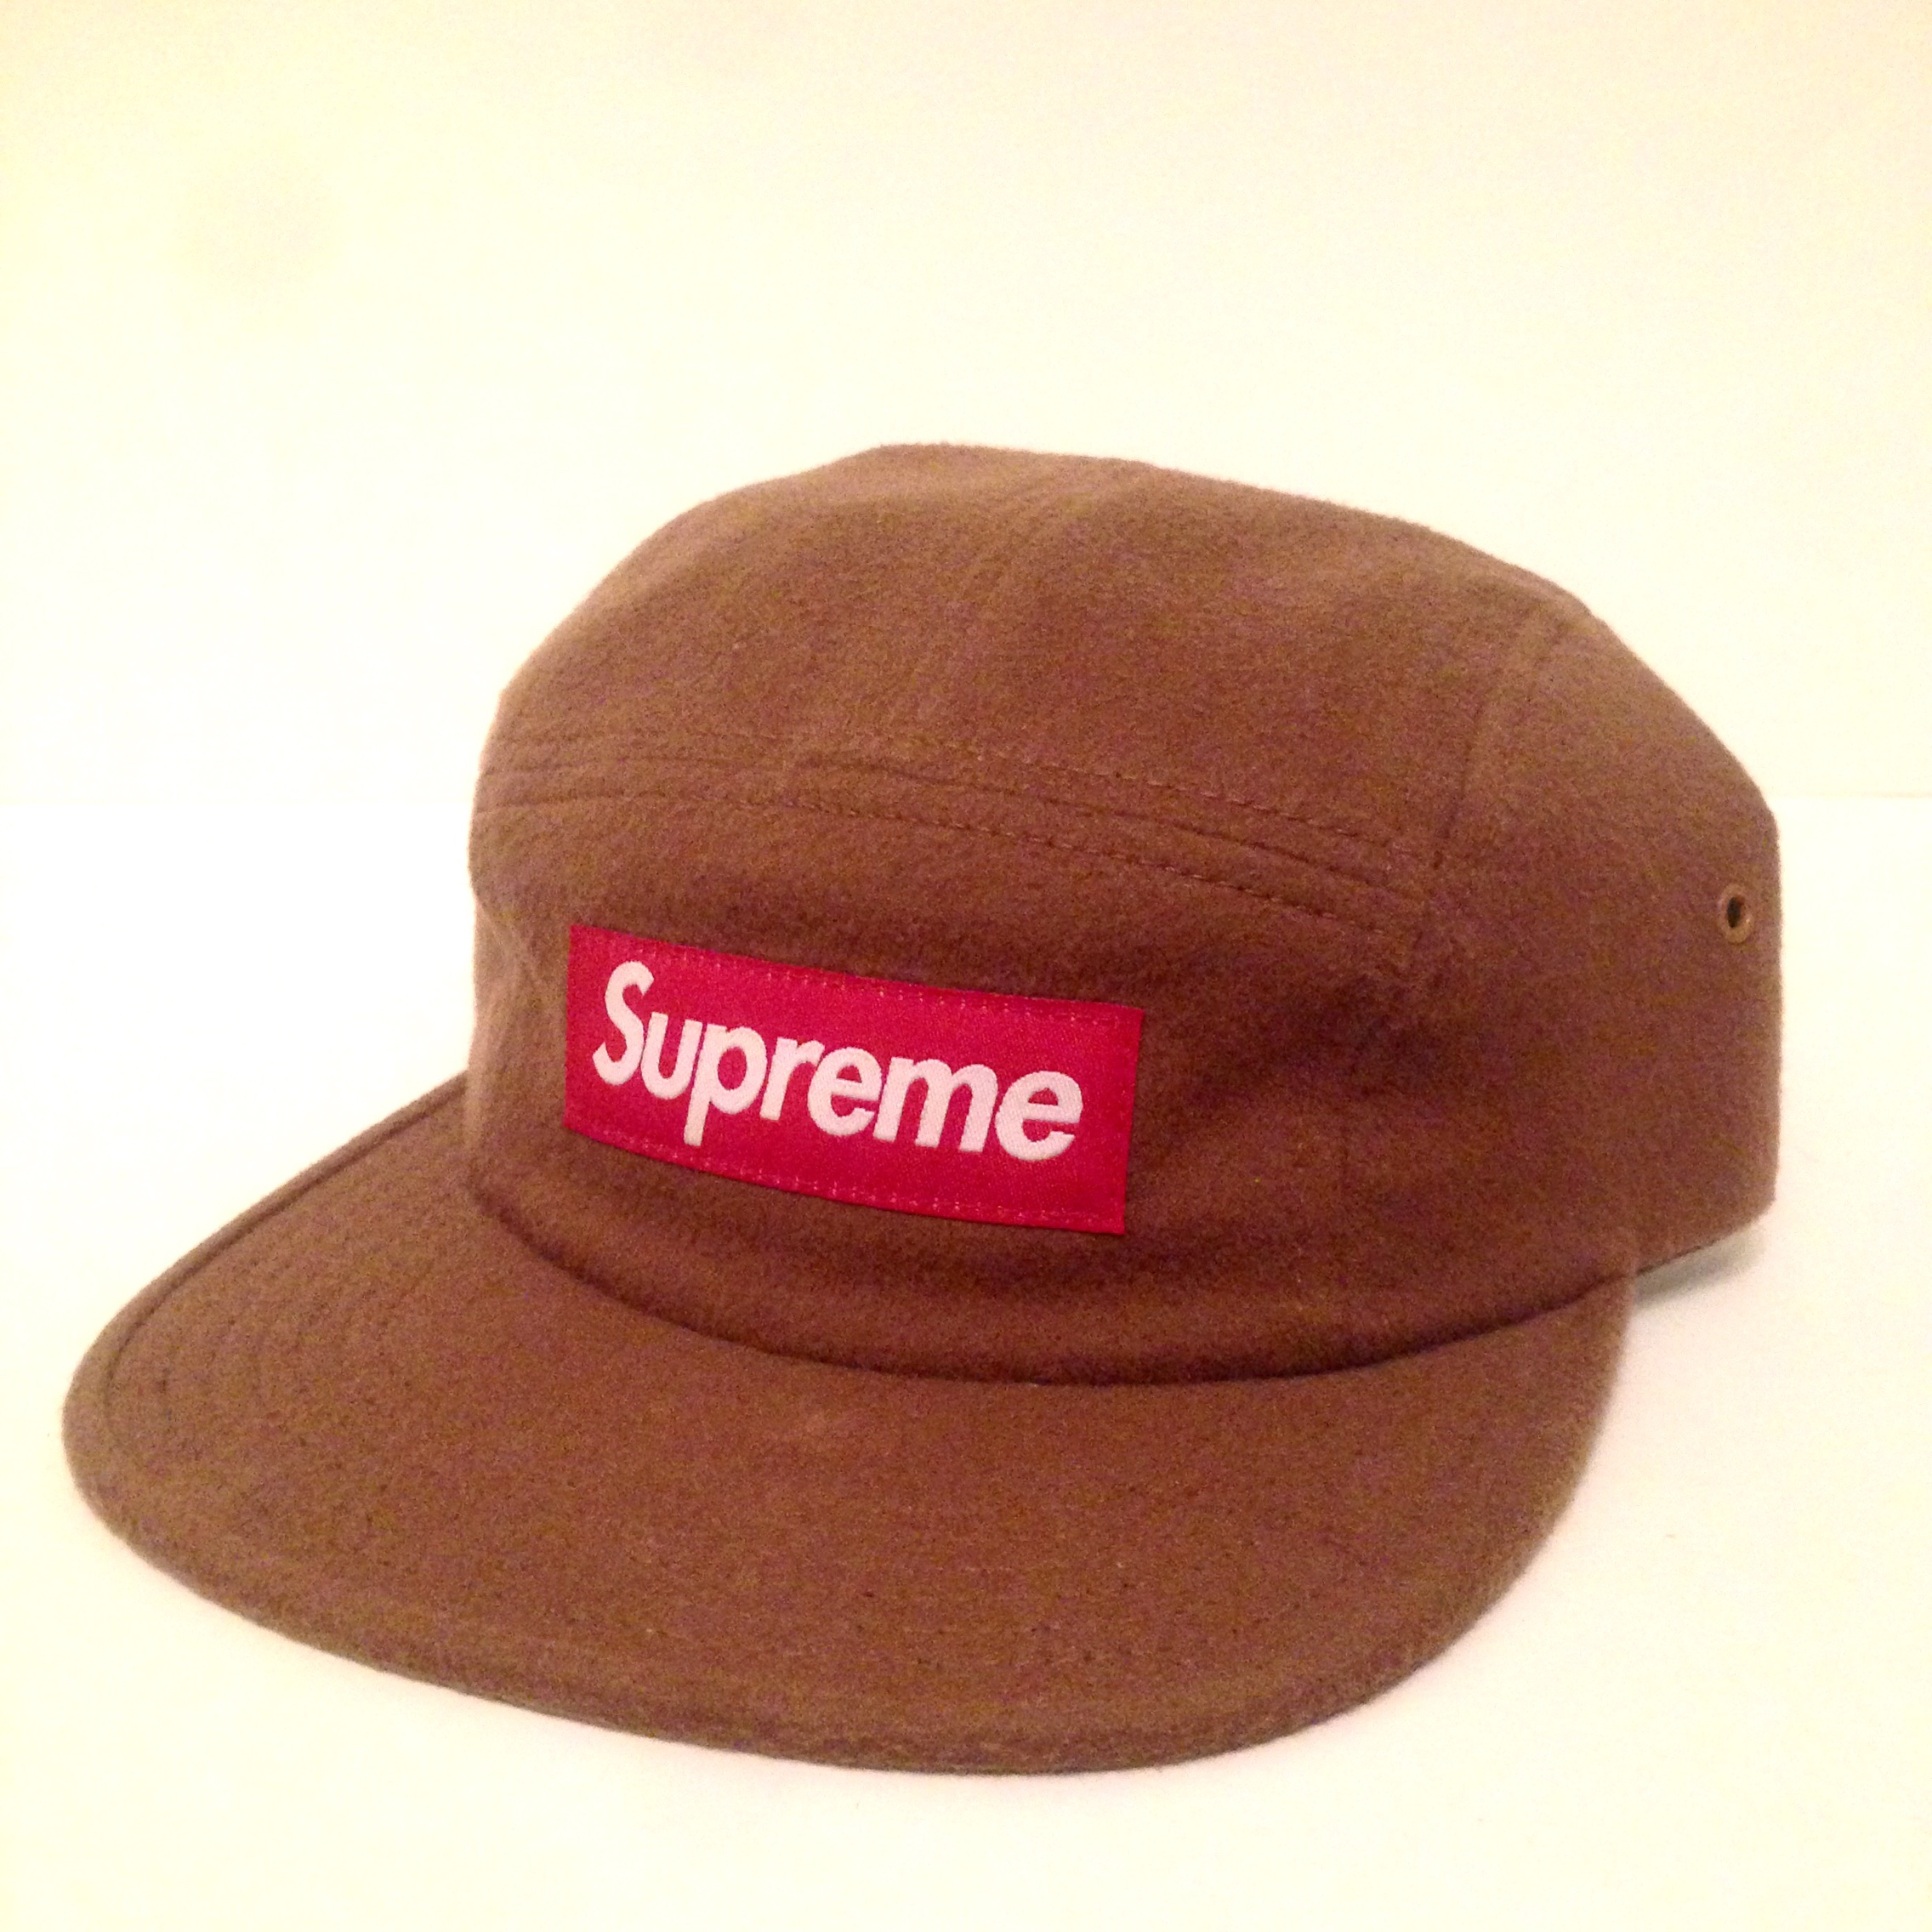 9773f34f @buck_finn. 5 months ago. London, United Kingdom. SUPREME LORO PIANA CAMP  CAP 5 PANEL TAN/RED BOX LOGO ...